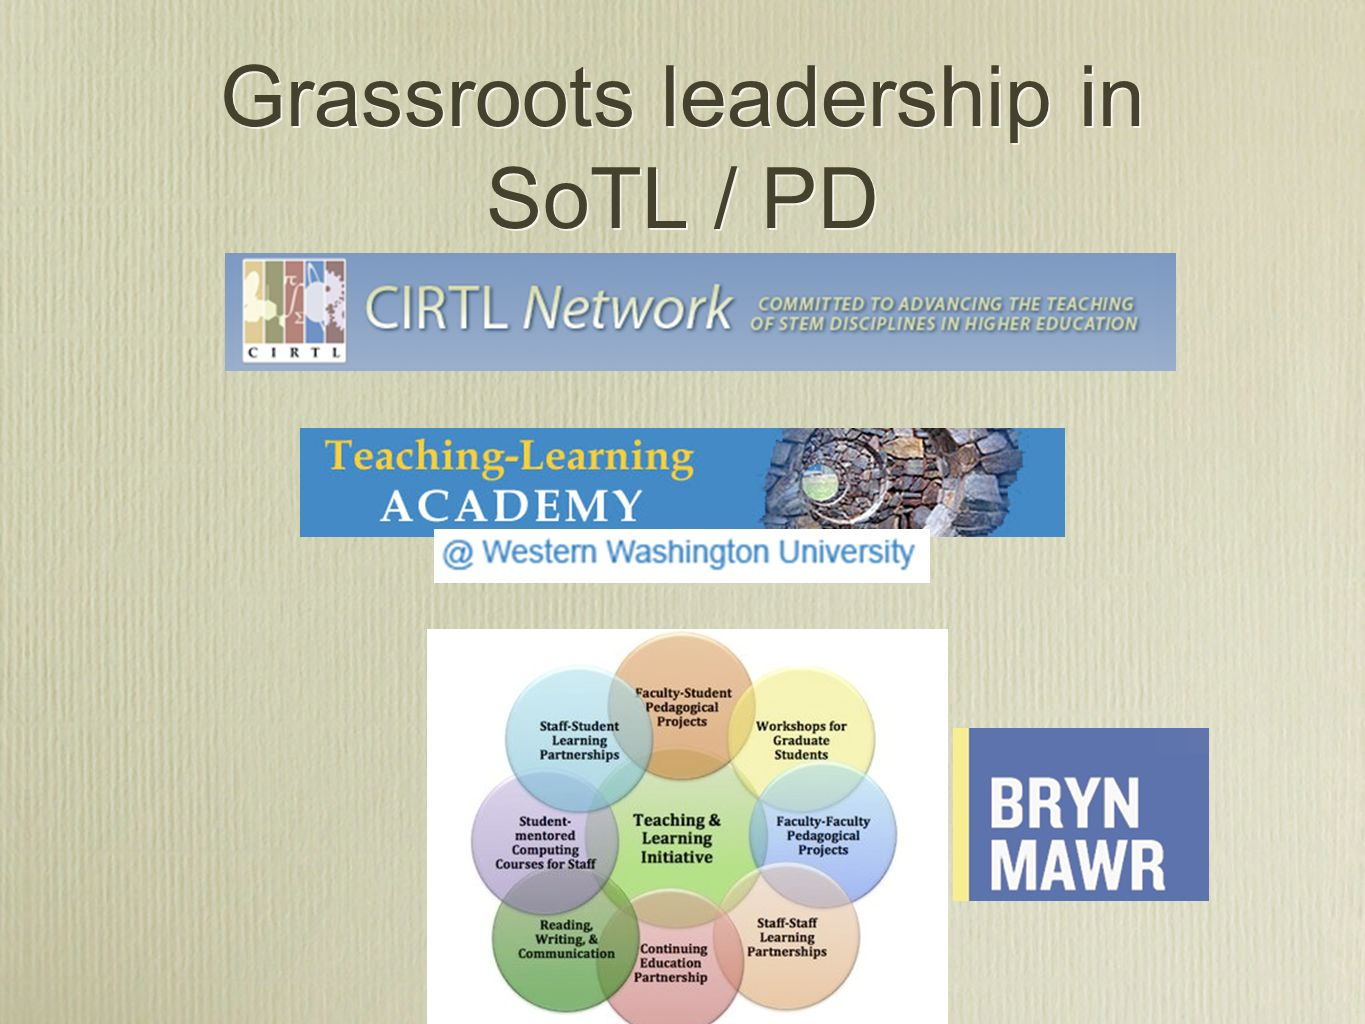 Grassroots leadership in SoTL / PD